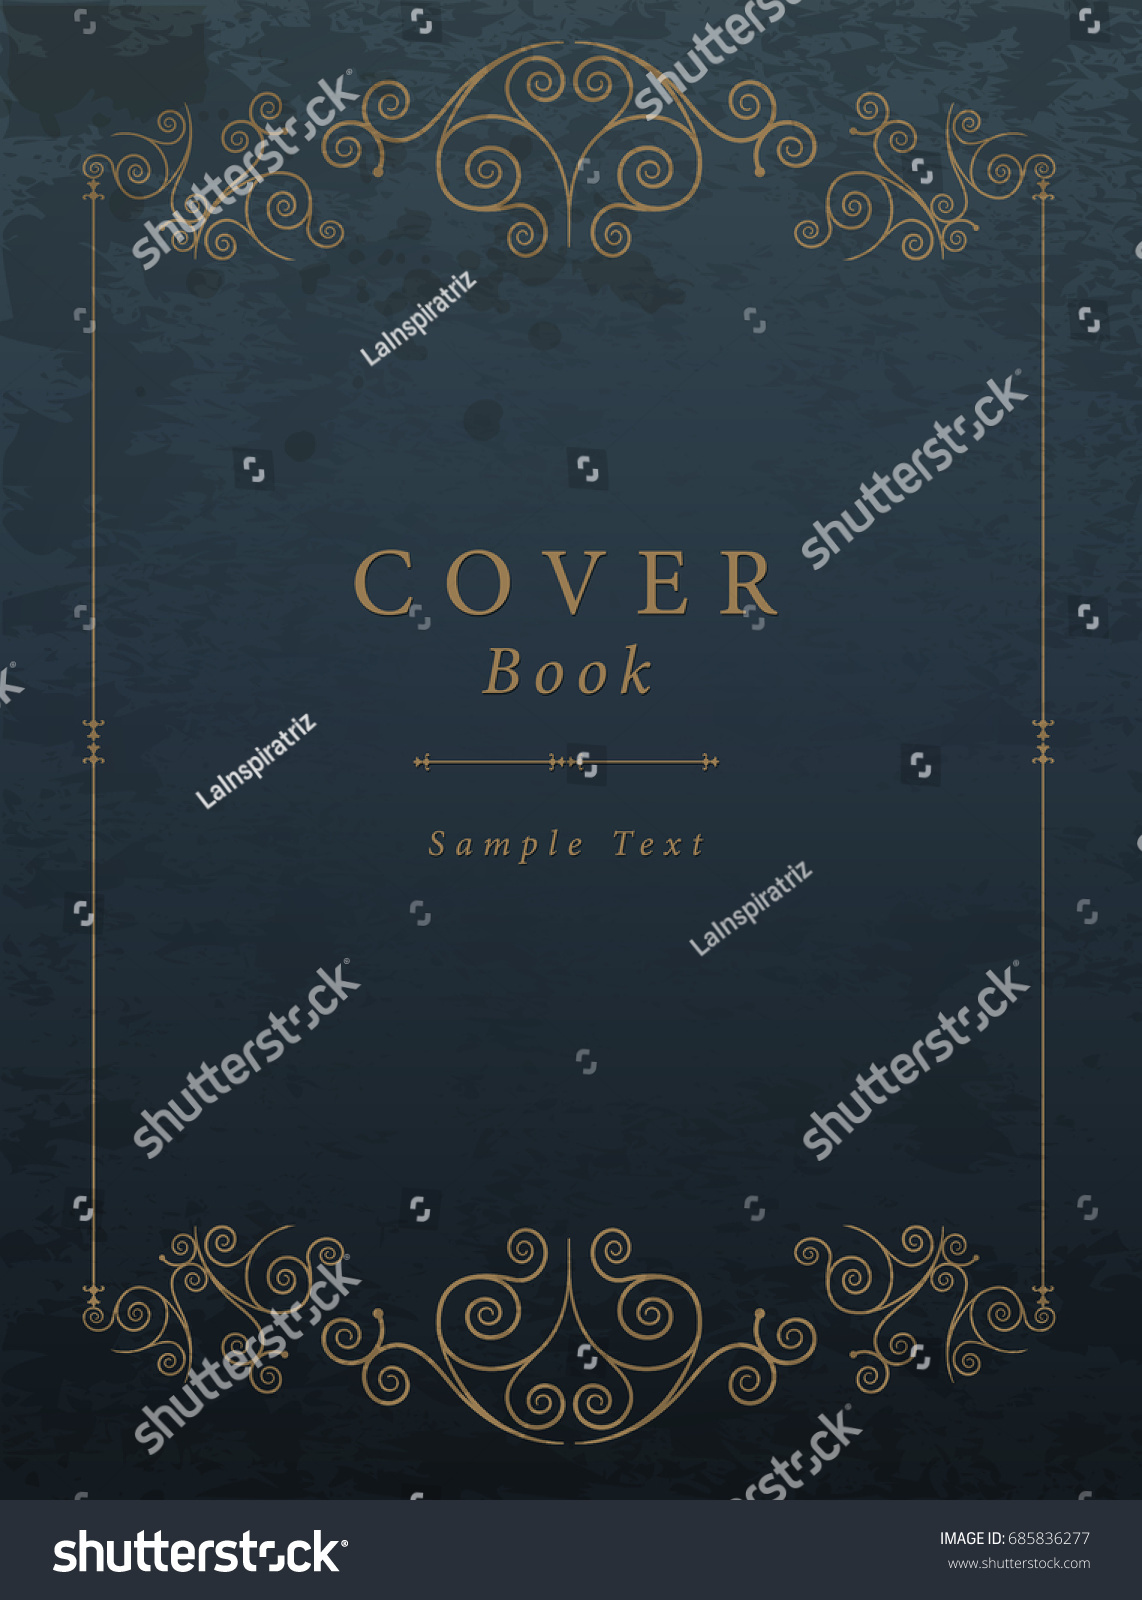 Poetry Book Cover Vector : Vintage book cover vector illustration stock